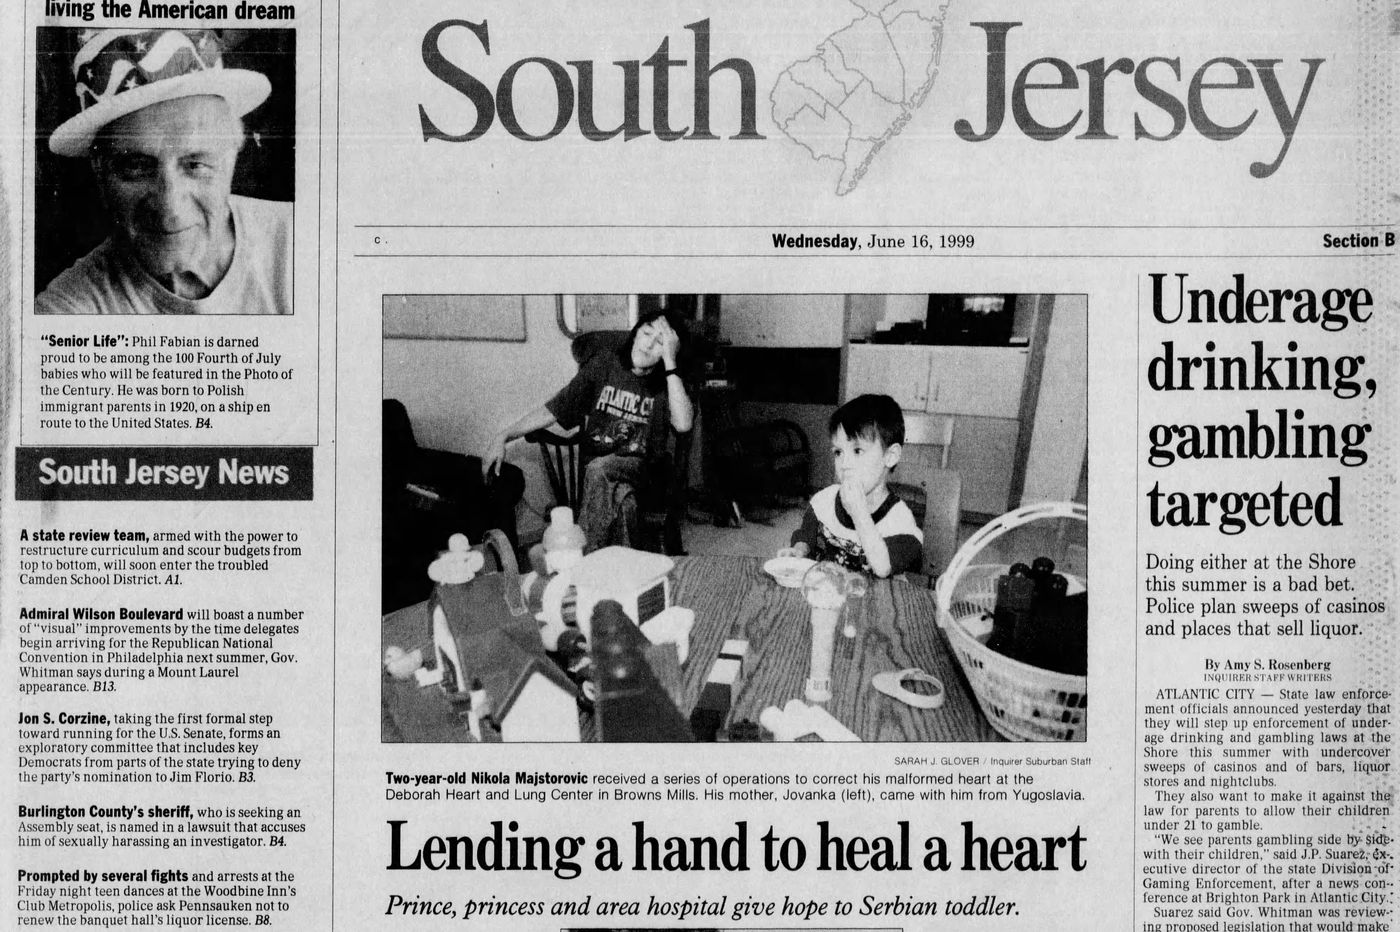 Serbian toddler got heart repaired in rural New Jersey